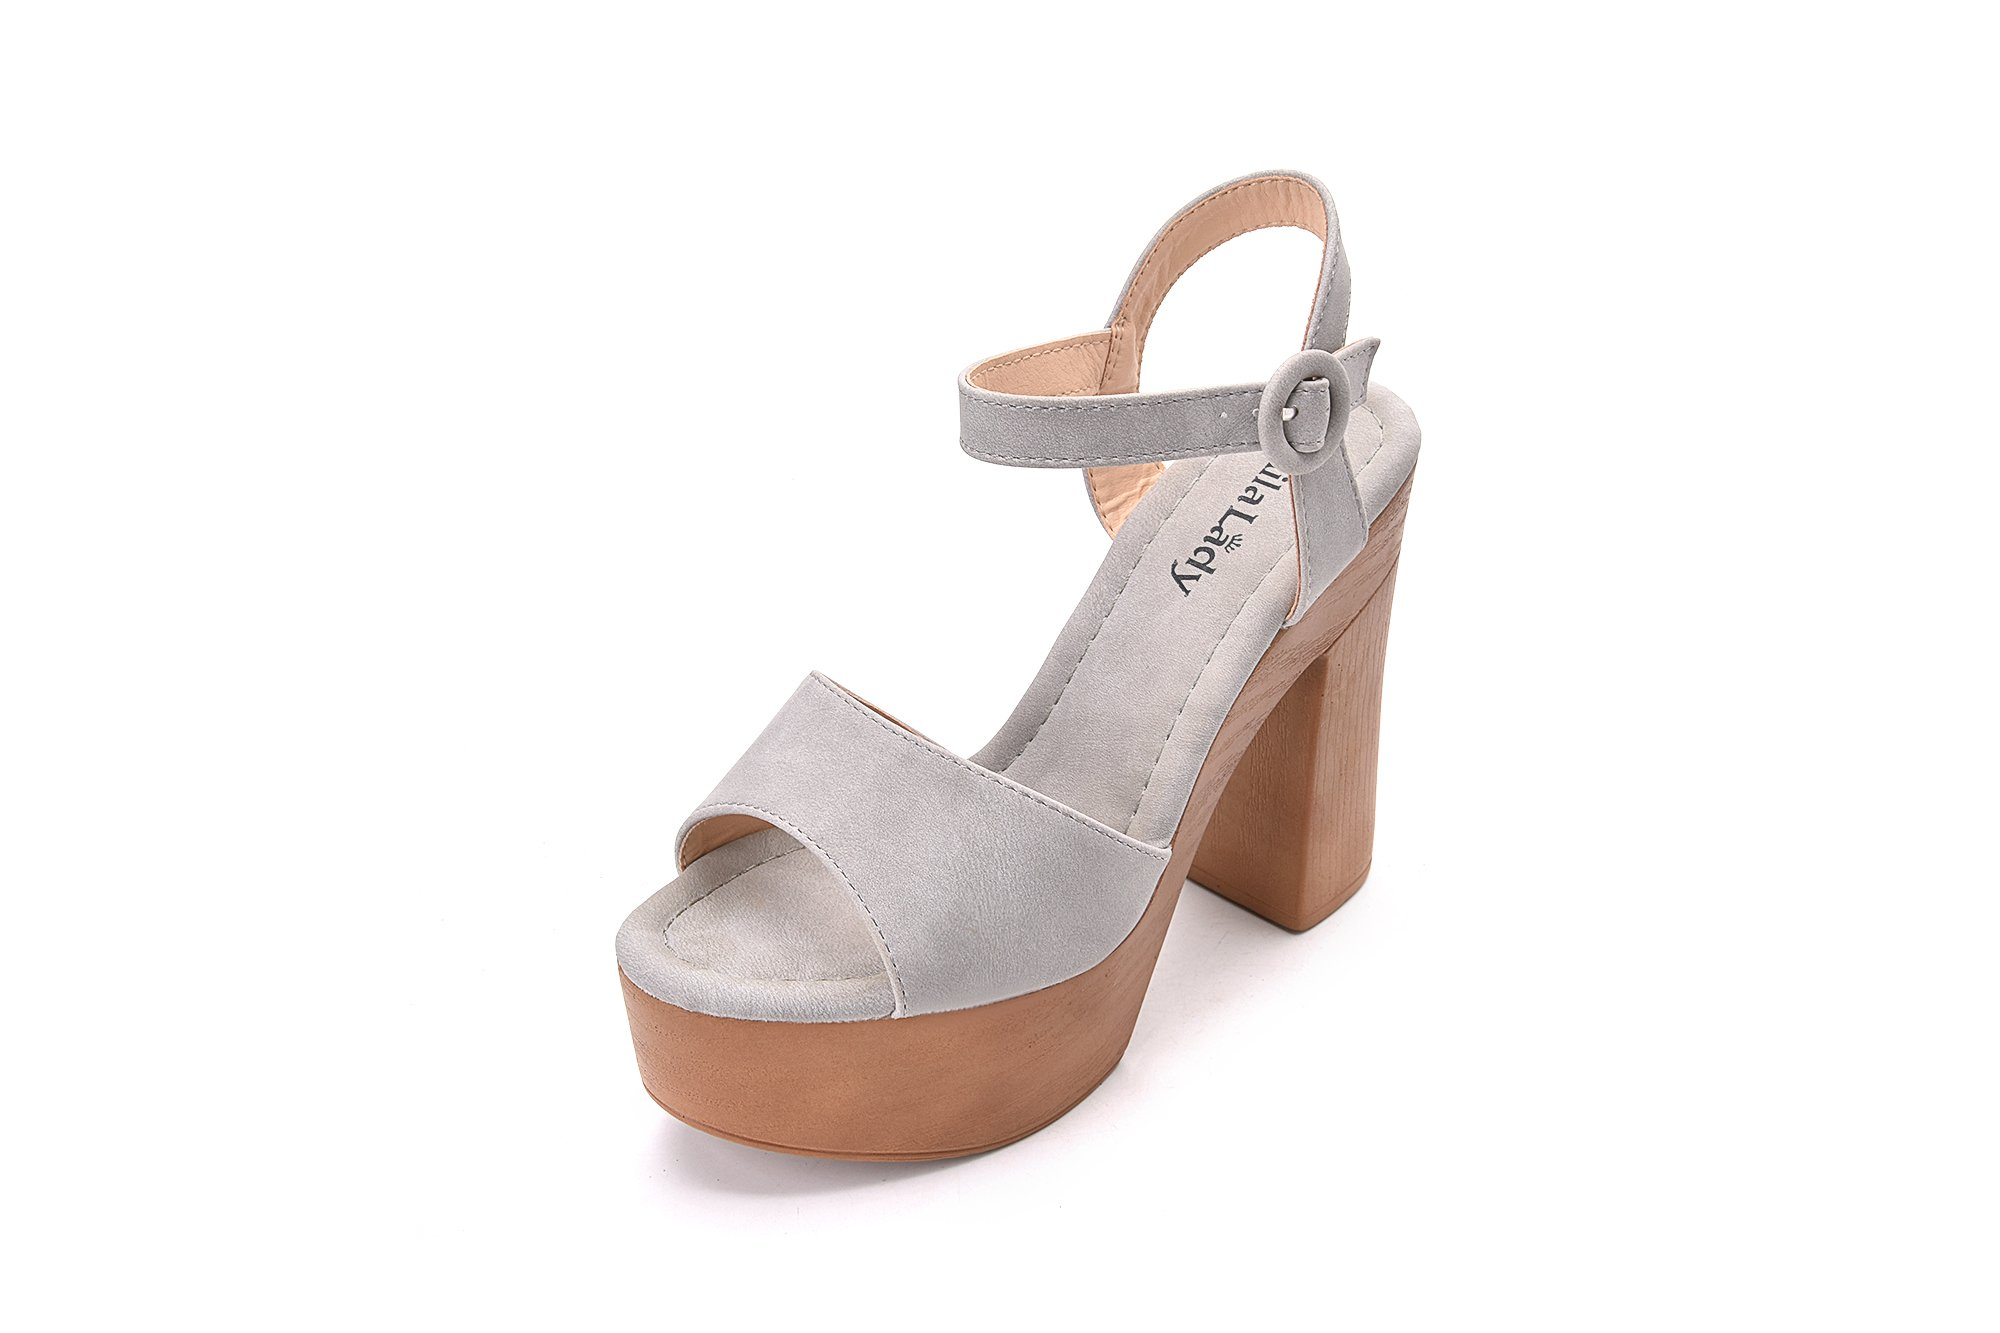 Evoking Chic Styles Ankle Strap Adjustable Buckle Chunky Heeled Sandals Platform Sole Shoes for Women, Loleta Grey Size 8.5